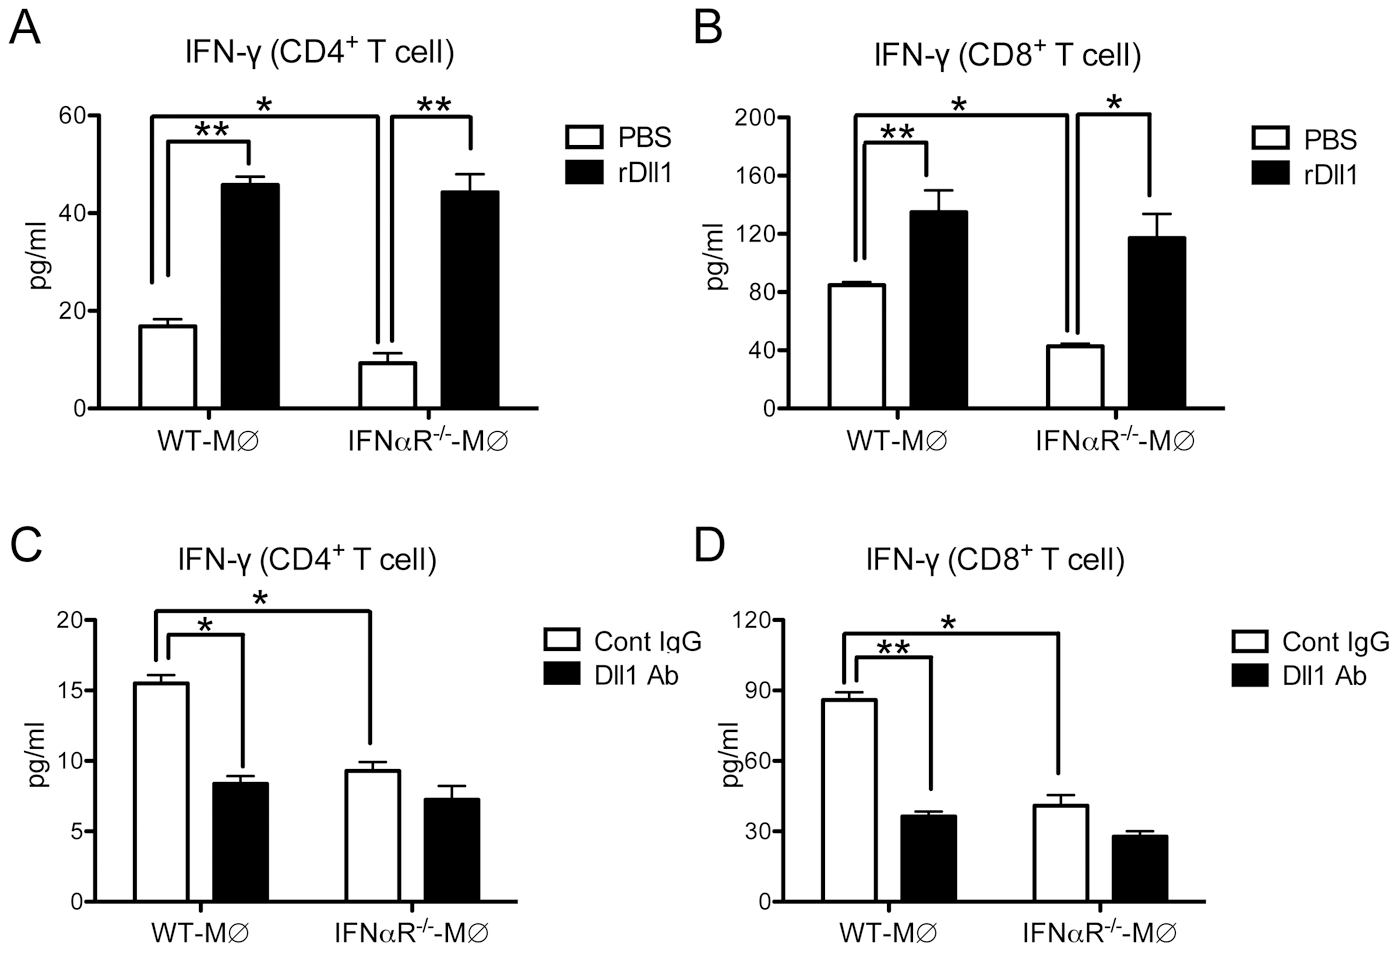 Activation of IFN-γ from lung T cells by lung macrophages during immune responses.